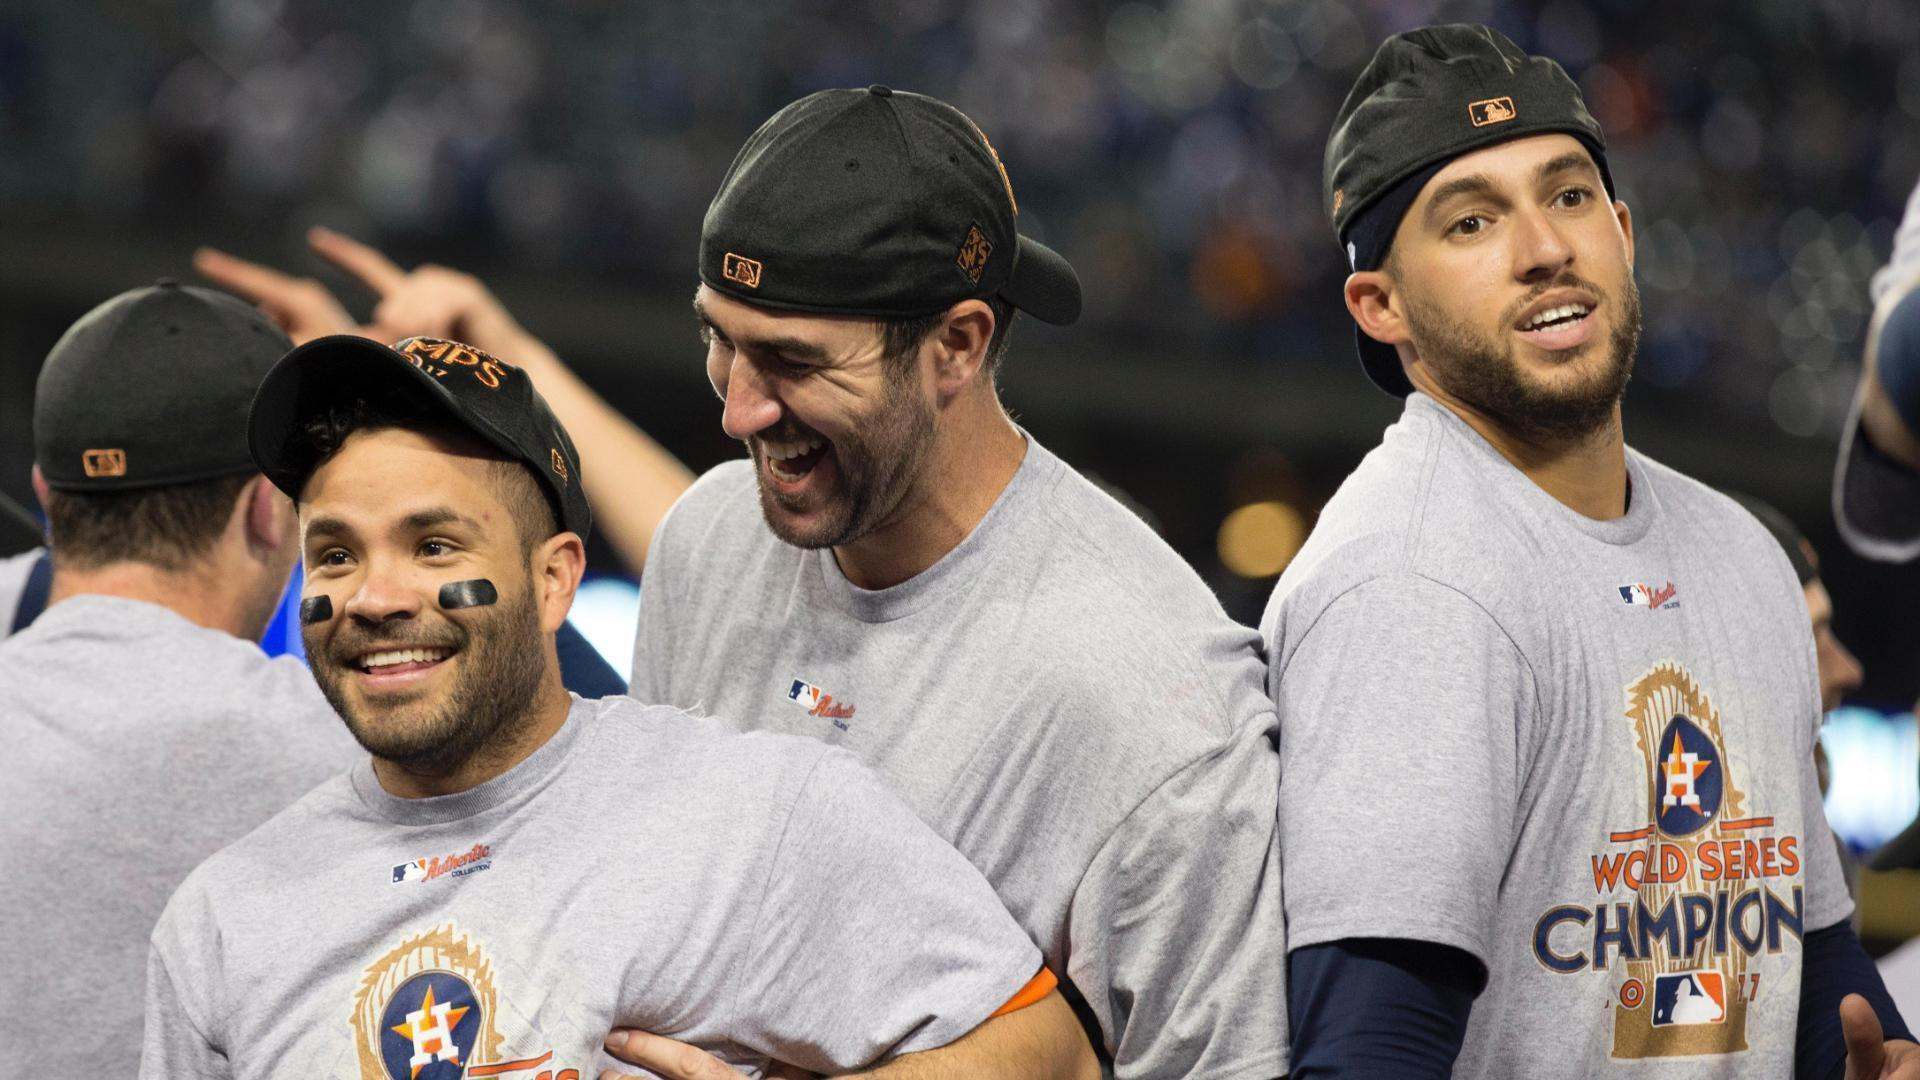 Should Astros be stripped of 2017 World Series title?